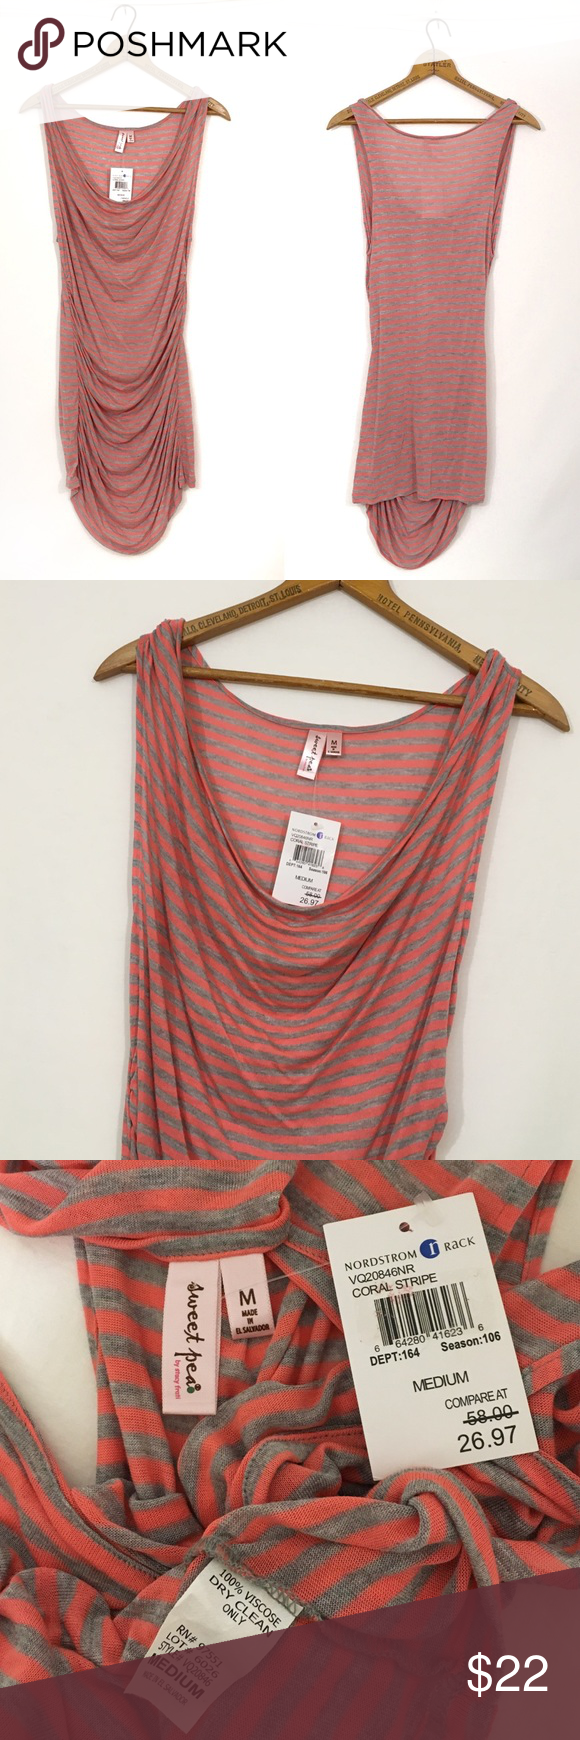 "SWEET PEA STACY FRATI ruched cowl neck stripe New condition; tag attached. 100% viscose. Bust 34 with a ton of stretch length 31"" (extra long) color: coral stripe Sweet Pea Tops Tank Tops"